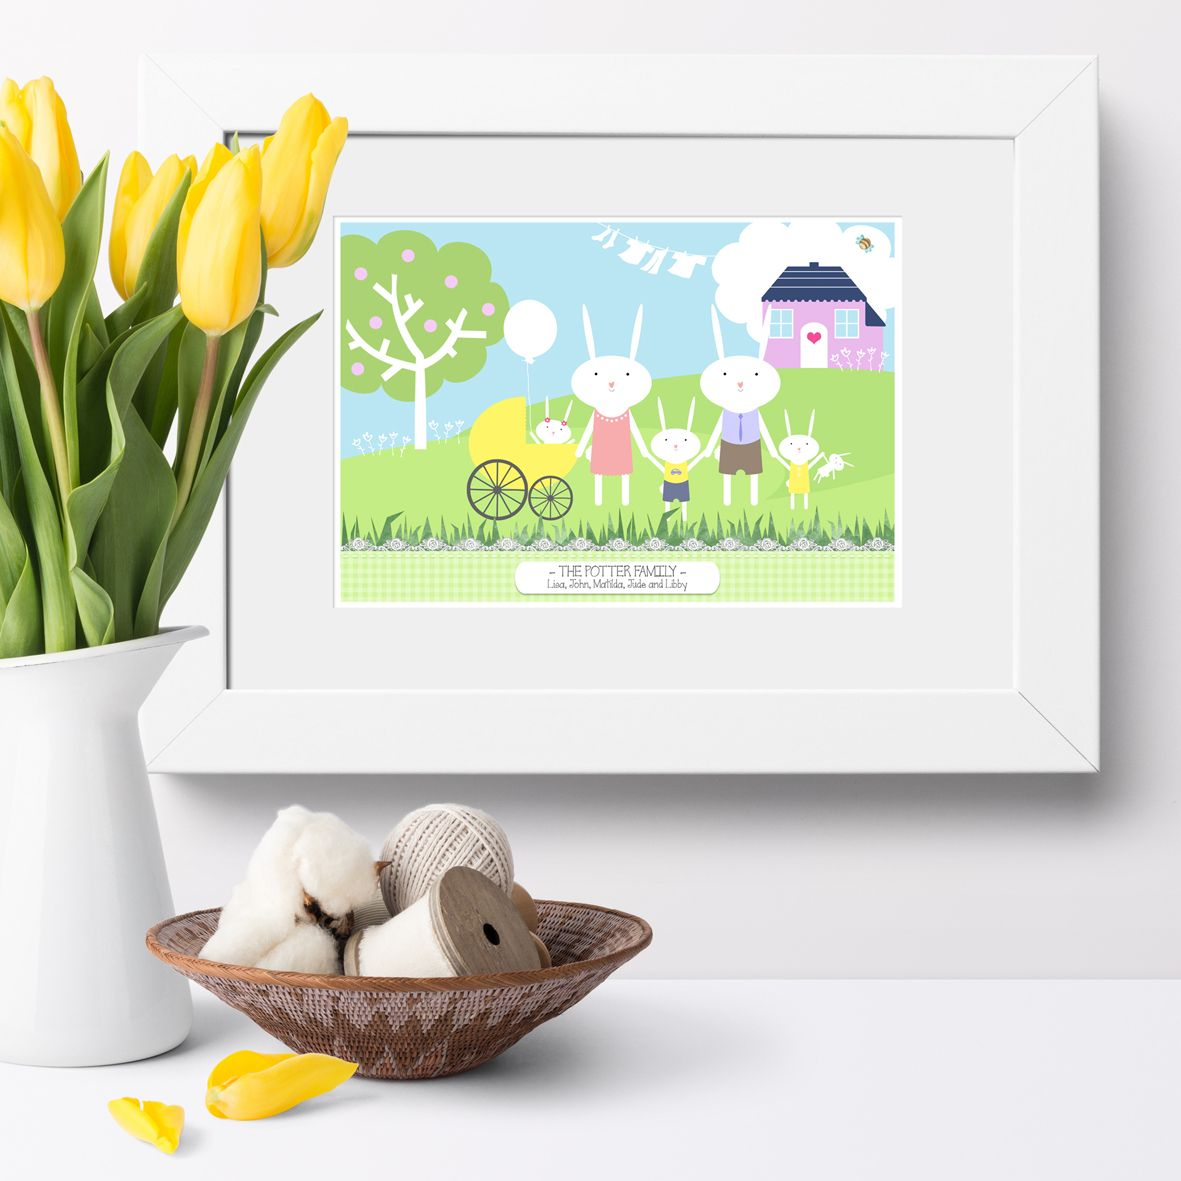 Personalised Bunny Rabbit Family Print | Bespoke wall art to celebrate your family - custom designed and featuring all your names. Delightful personalised family gift from PhotoFairytales #familygift #rabbit #bunny #familyprint #personalisedfamilygift